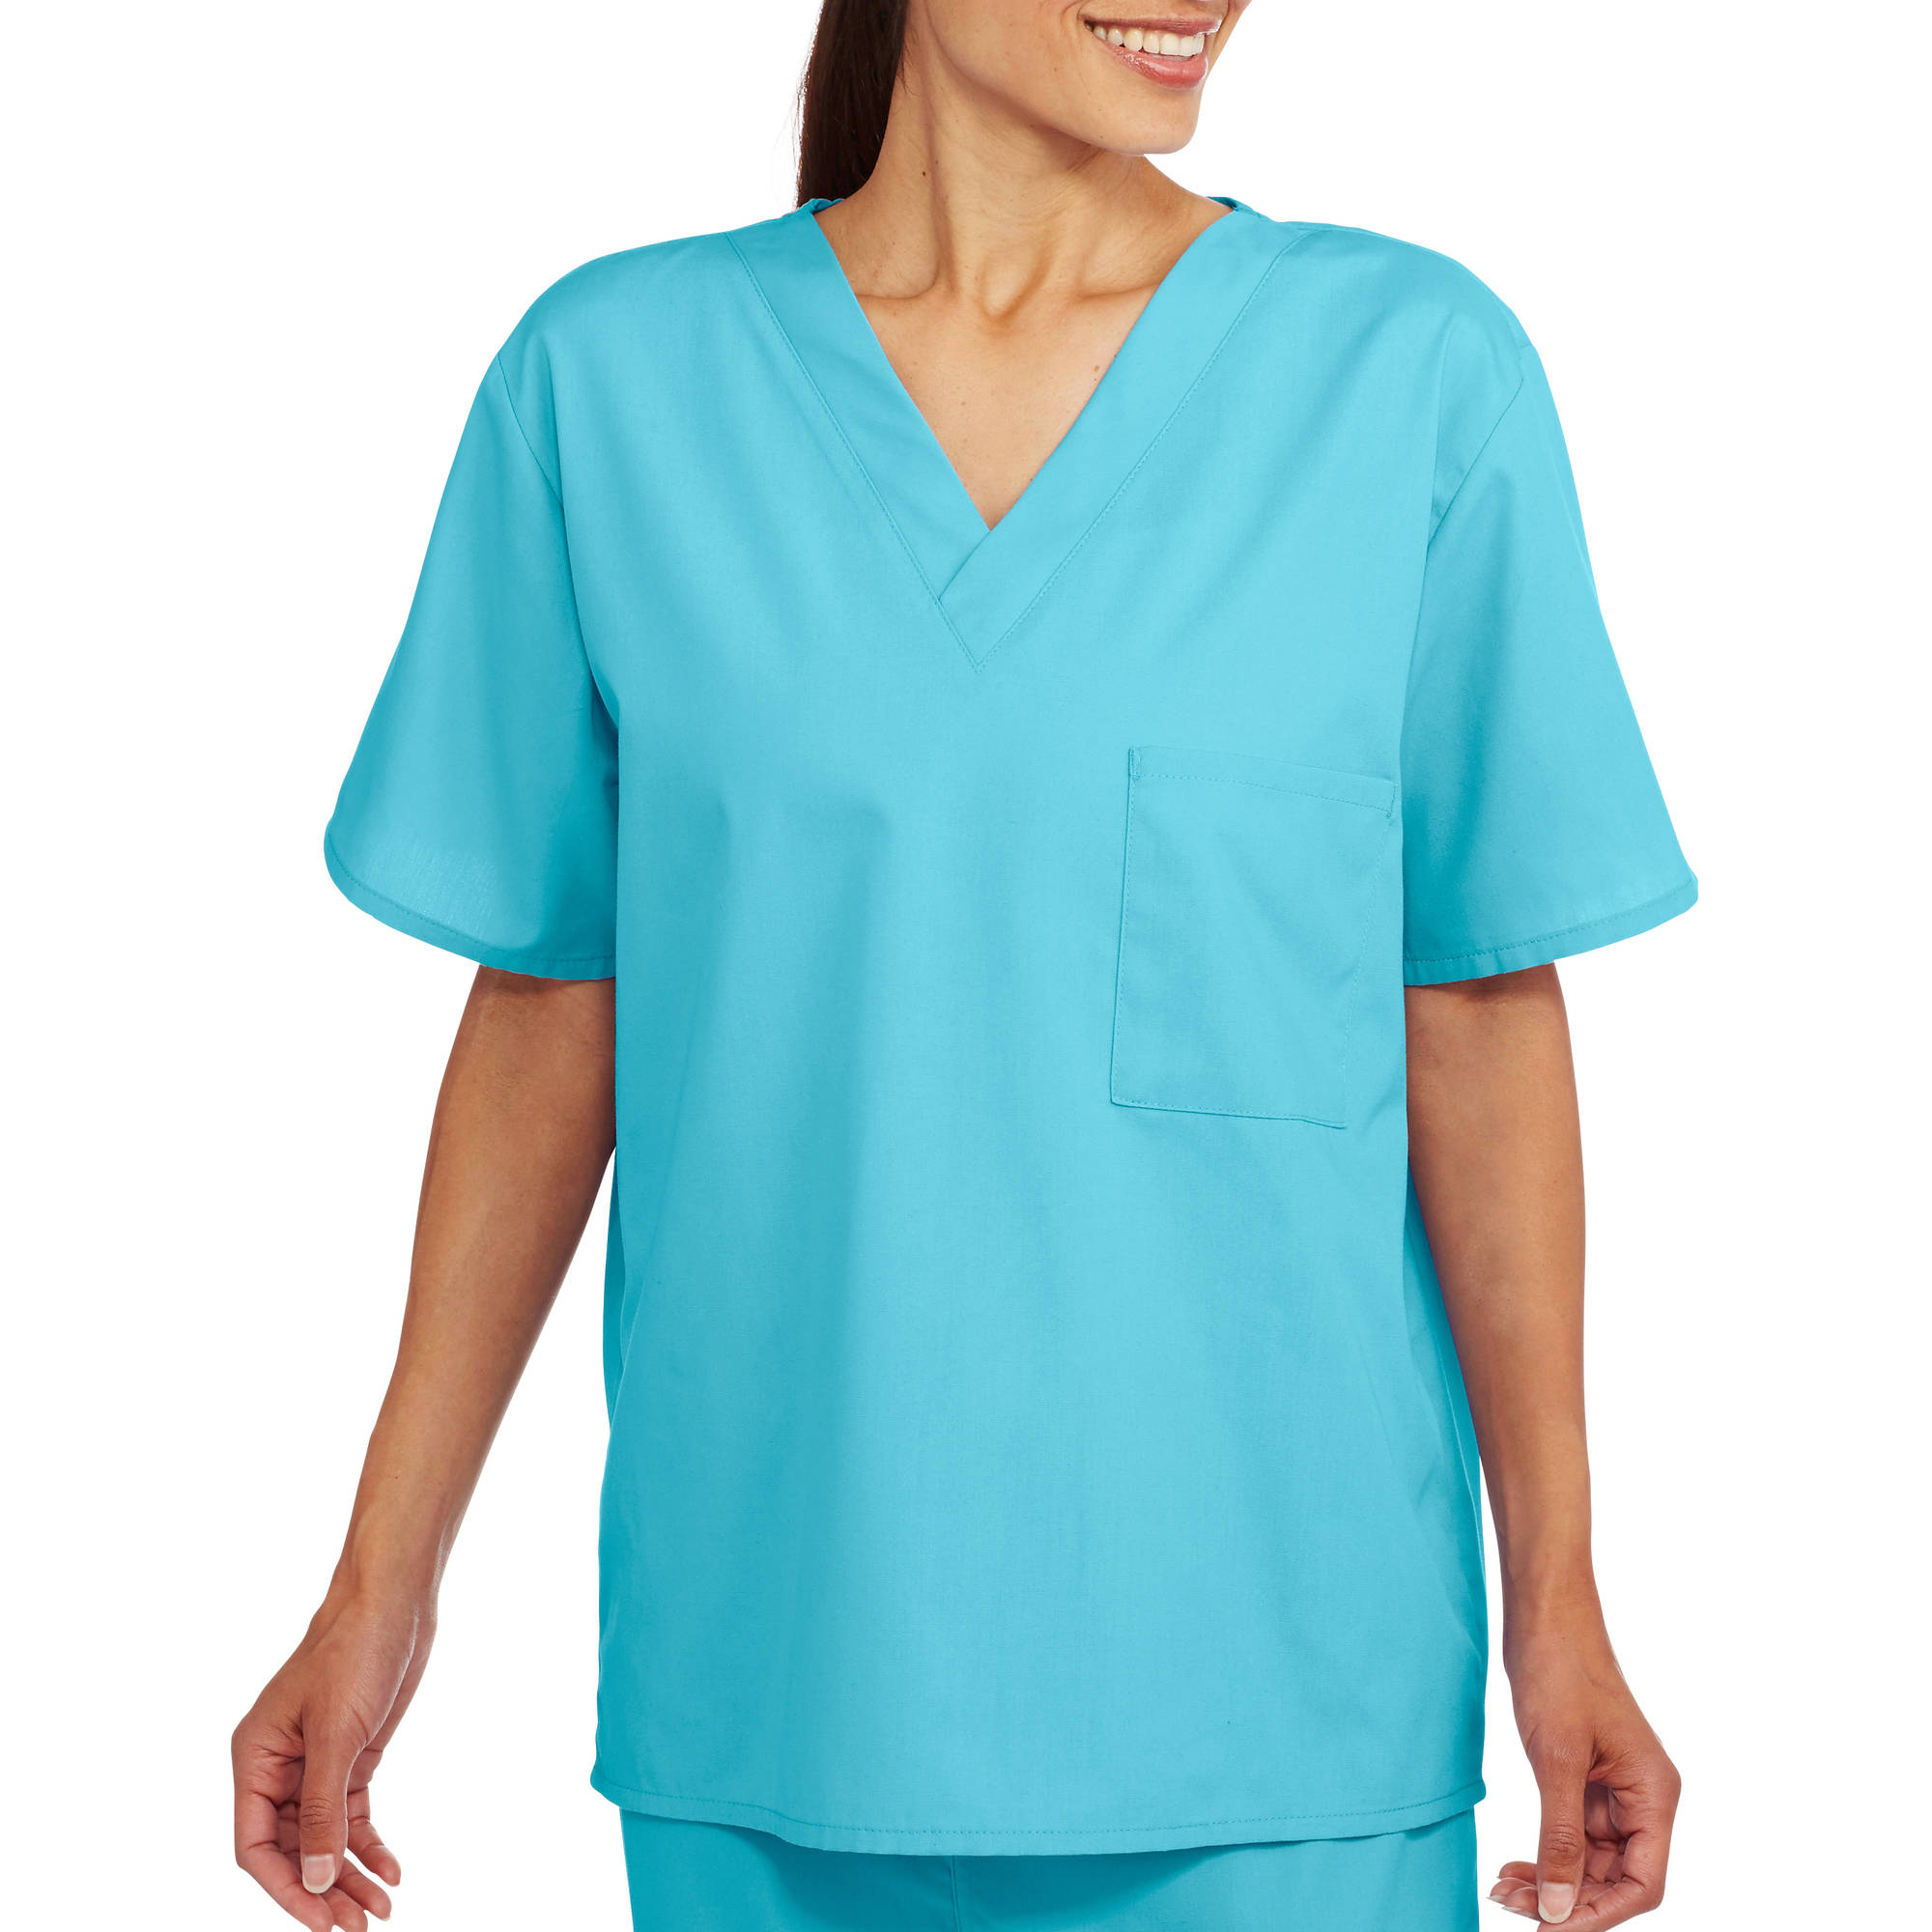 Unisex Short Sleeve V Neck Scrub Top with Pocket